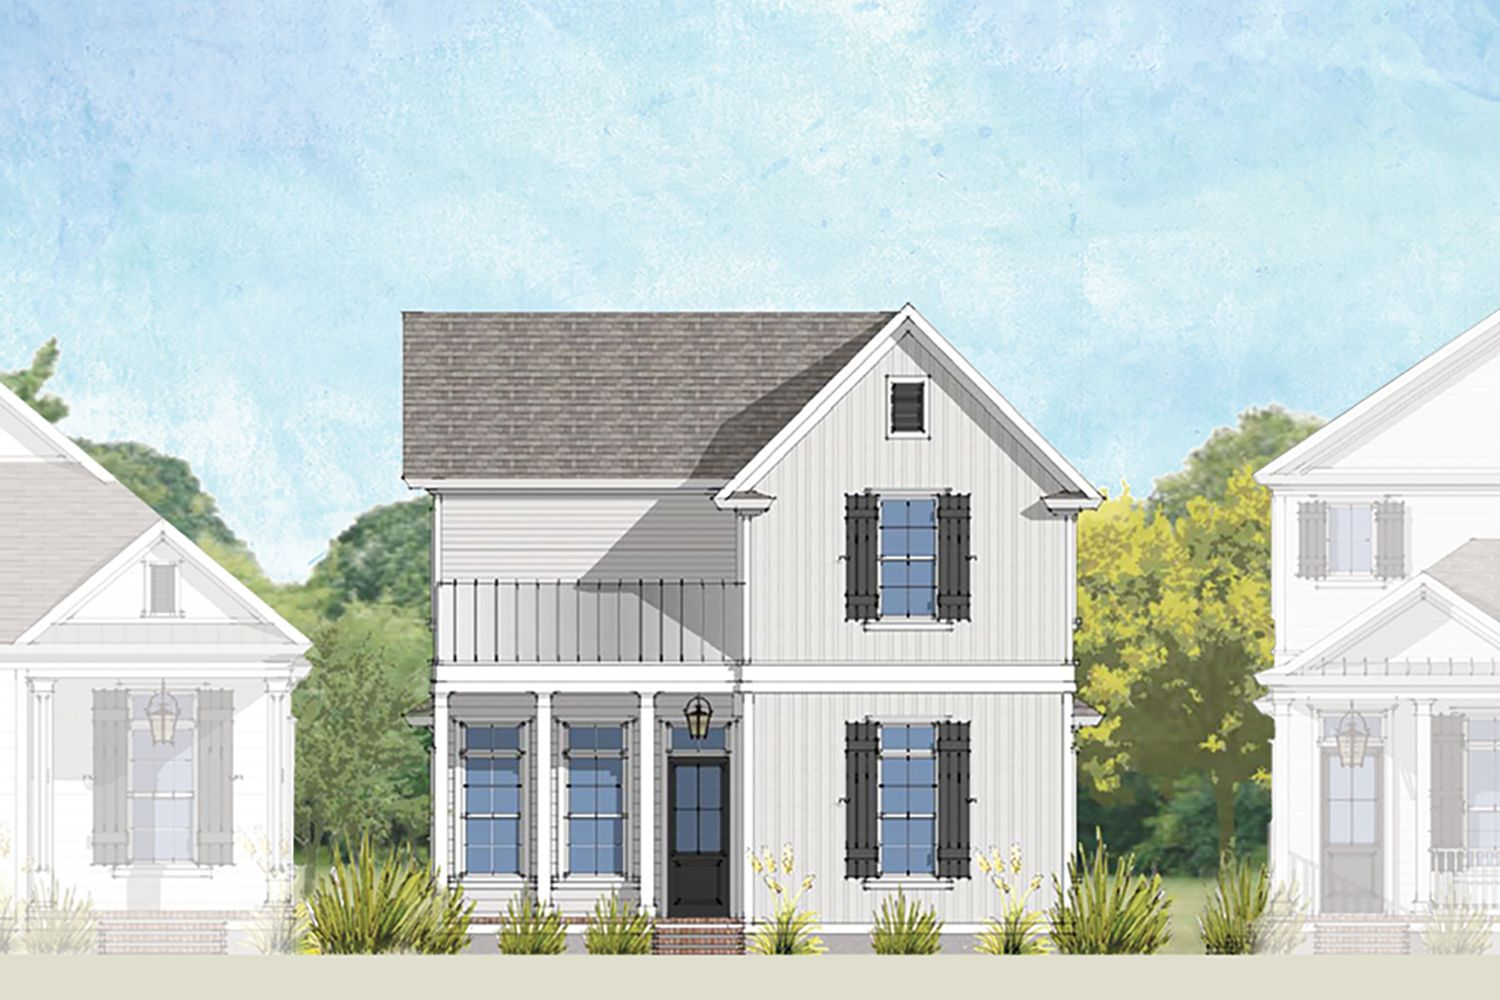 singles in east baton rouge county Looking for east baton rouge county, la single-family homes browse through 259 single-family homes for sale in east baton rouge county, la with prices between $32,000 and $1,450,000.